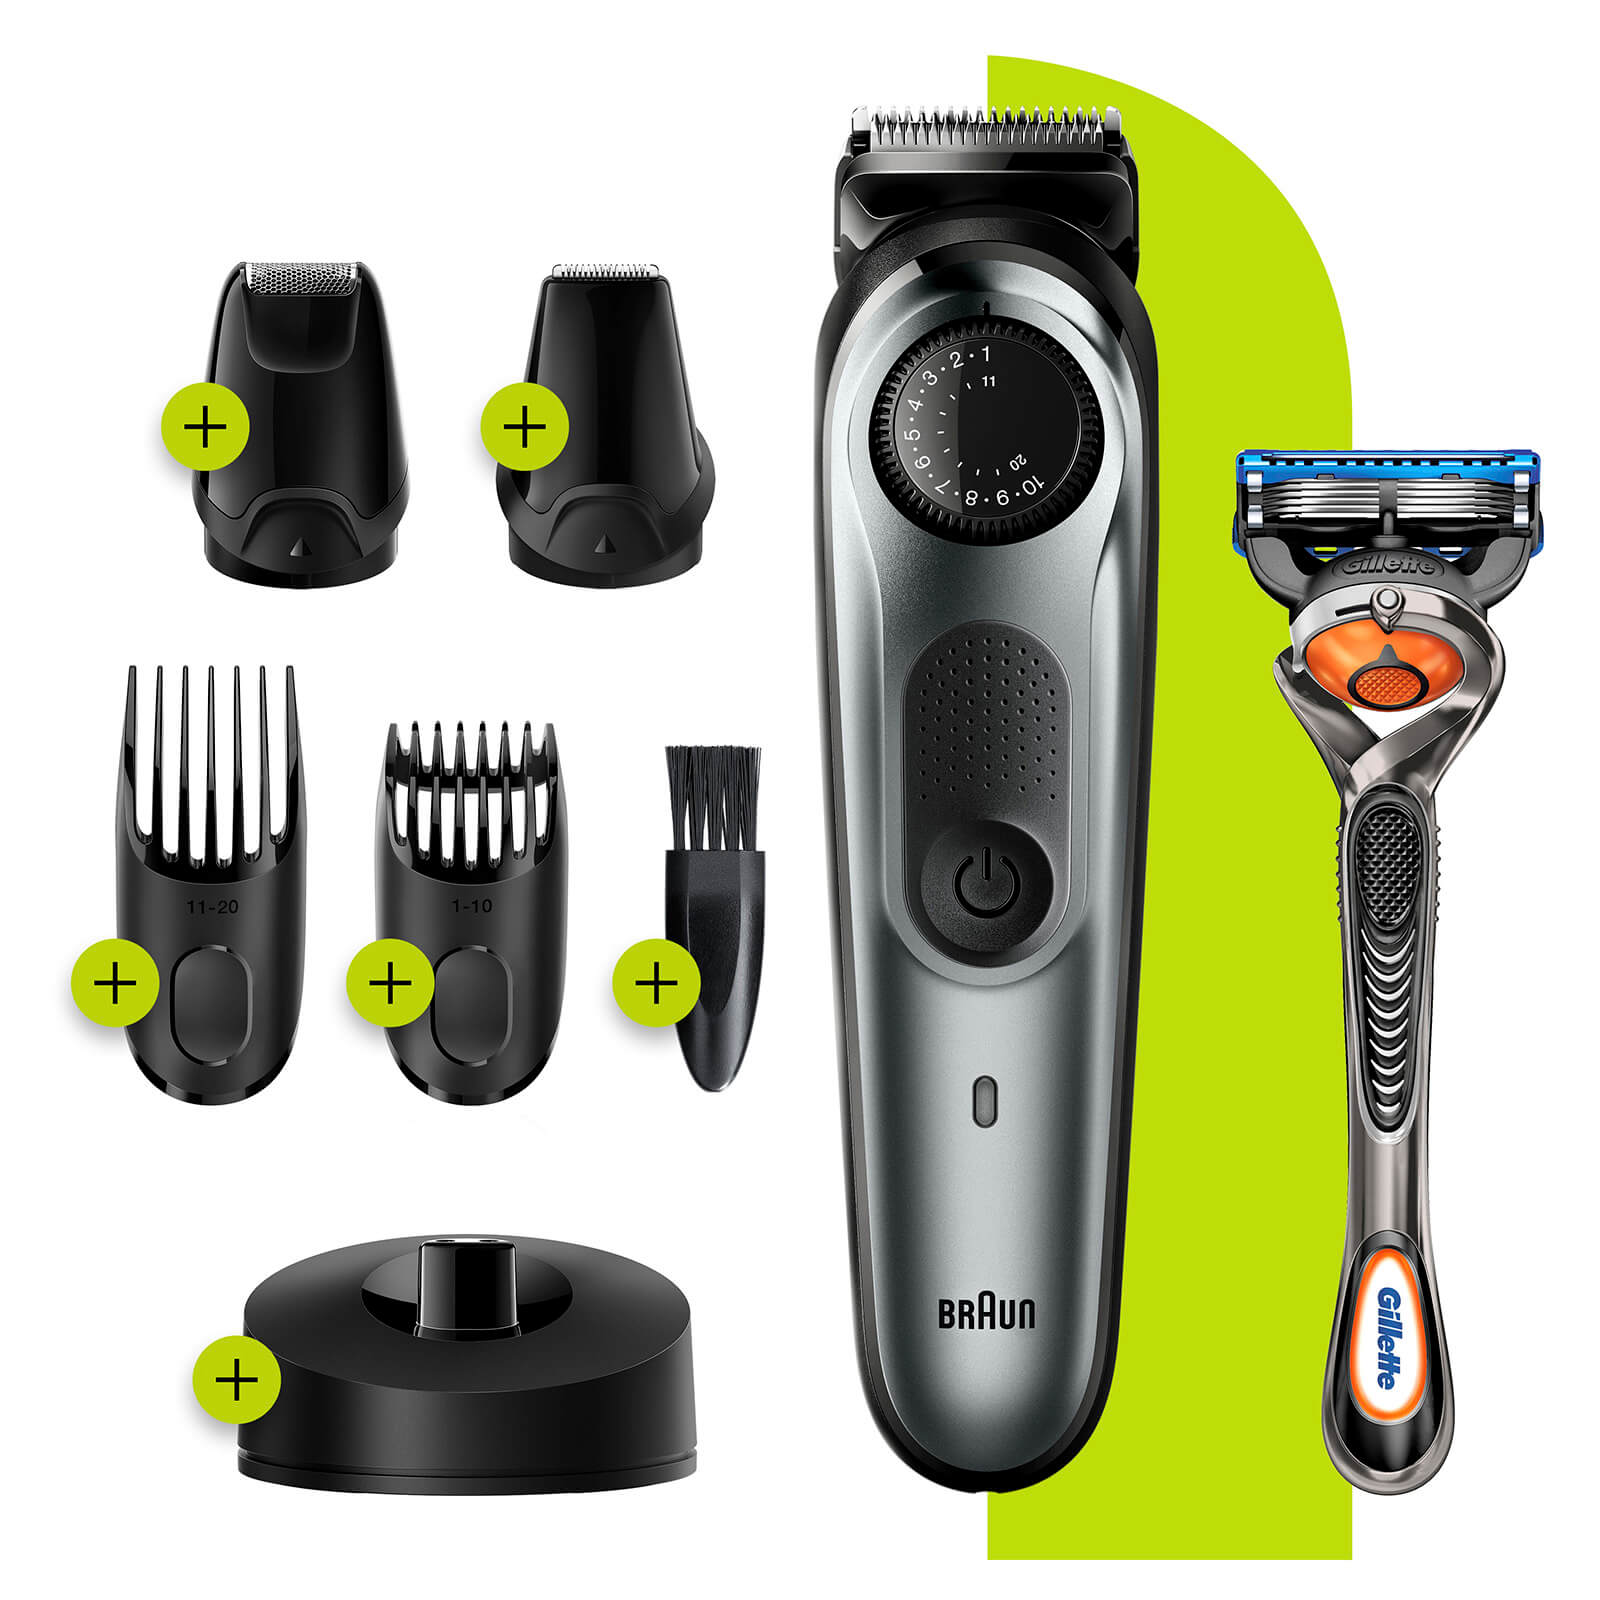 Beard Trimmer with 4 attachments and Gillette Razor - Charging Stand